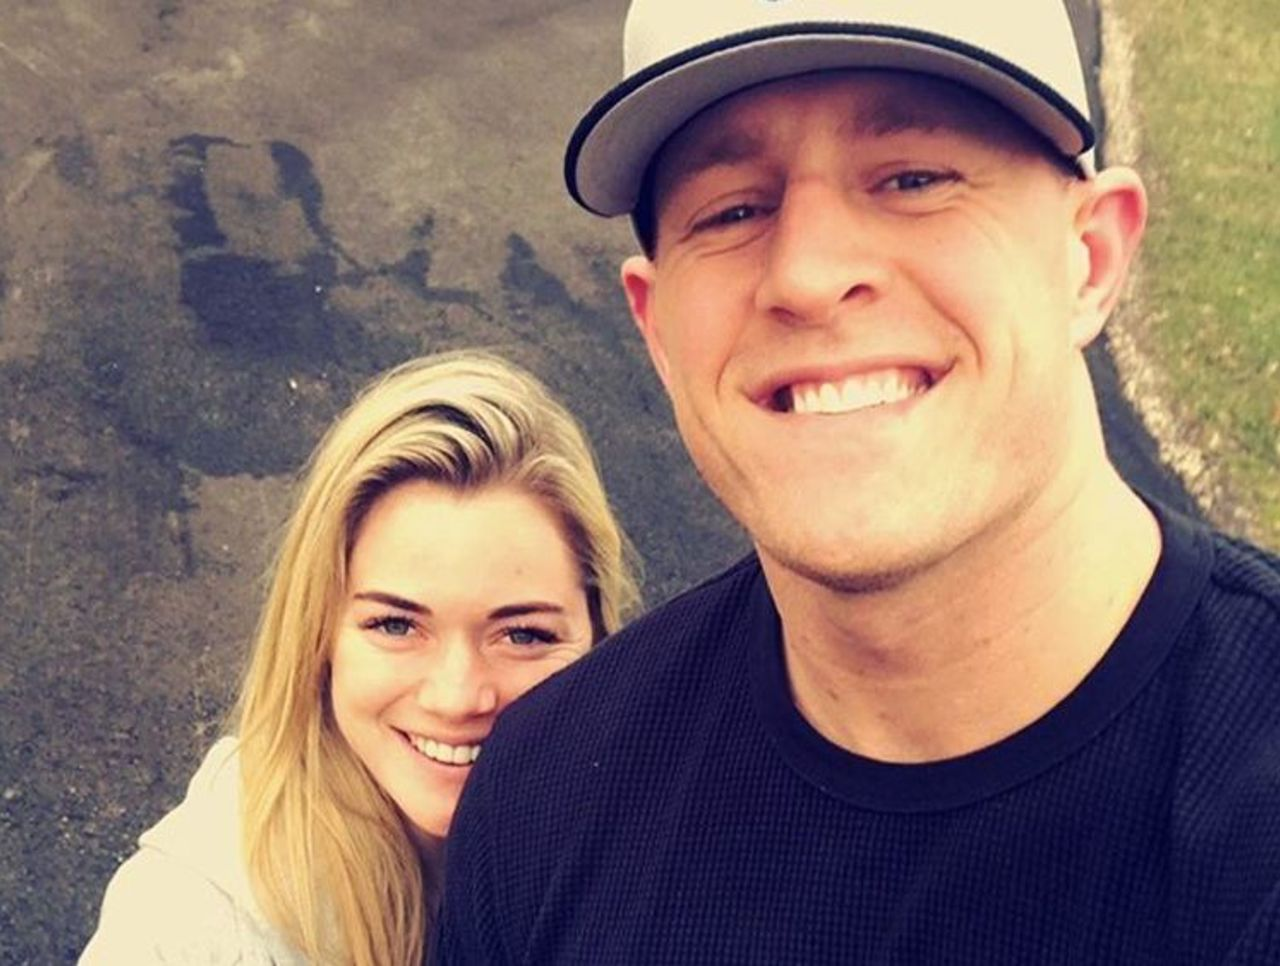 J.J. Watt's Girlfriend Spotted With A Ring On Her Finger